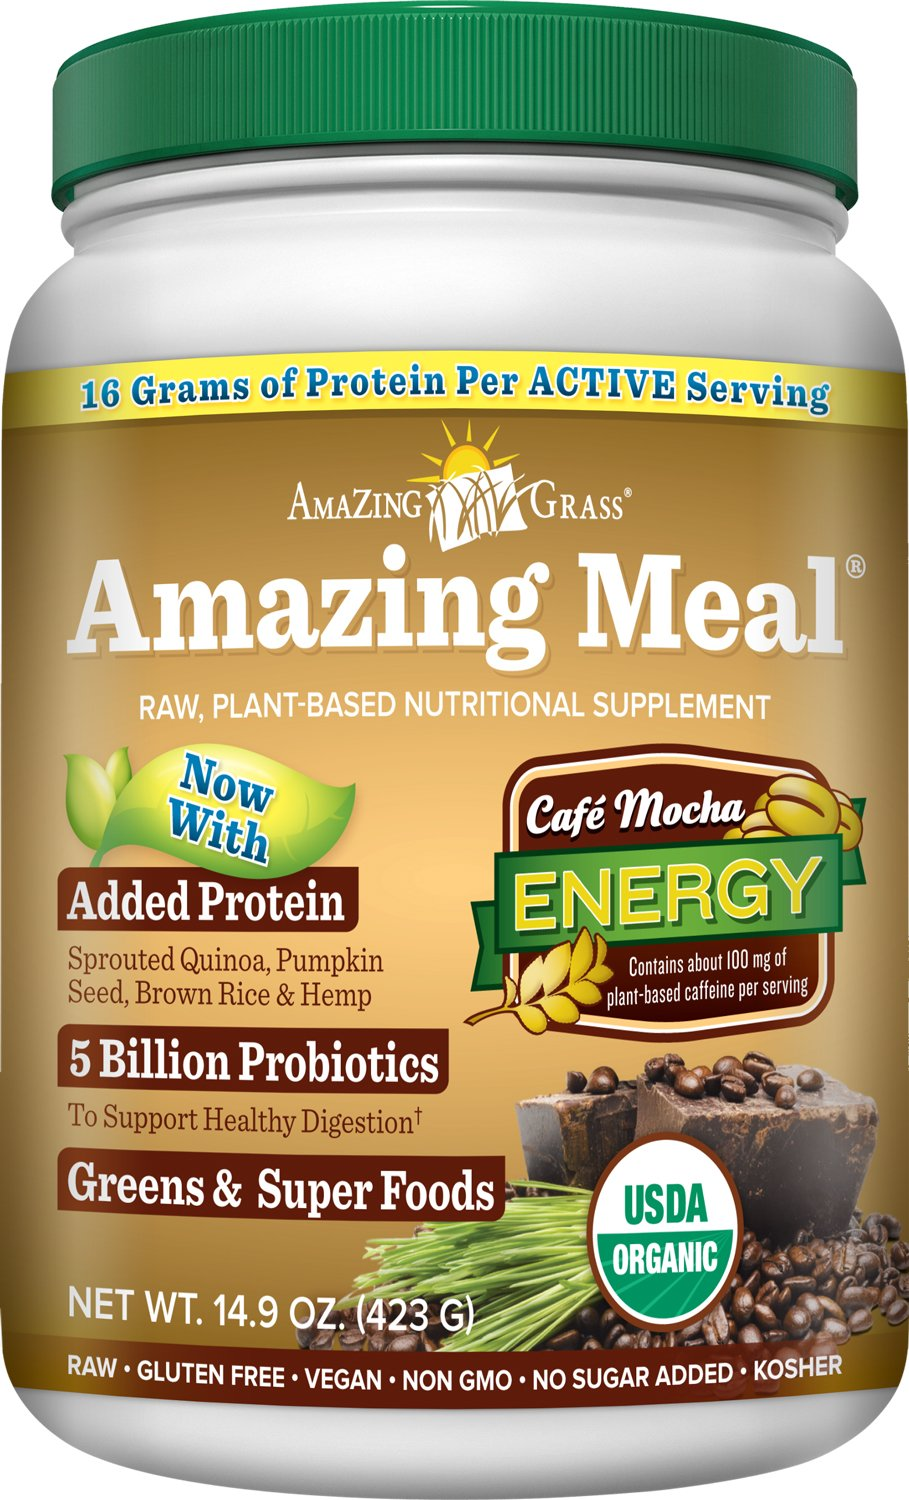 Amazing Grass Amazing Meal Supplement Powder, Cafe Mocha, 14.9 Ounce: Amazon.com: Grocery & Gourmet Food